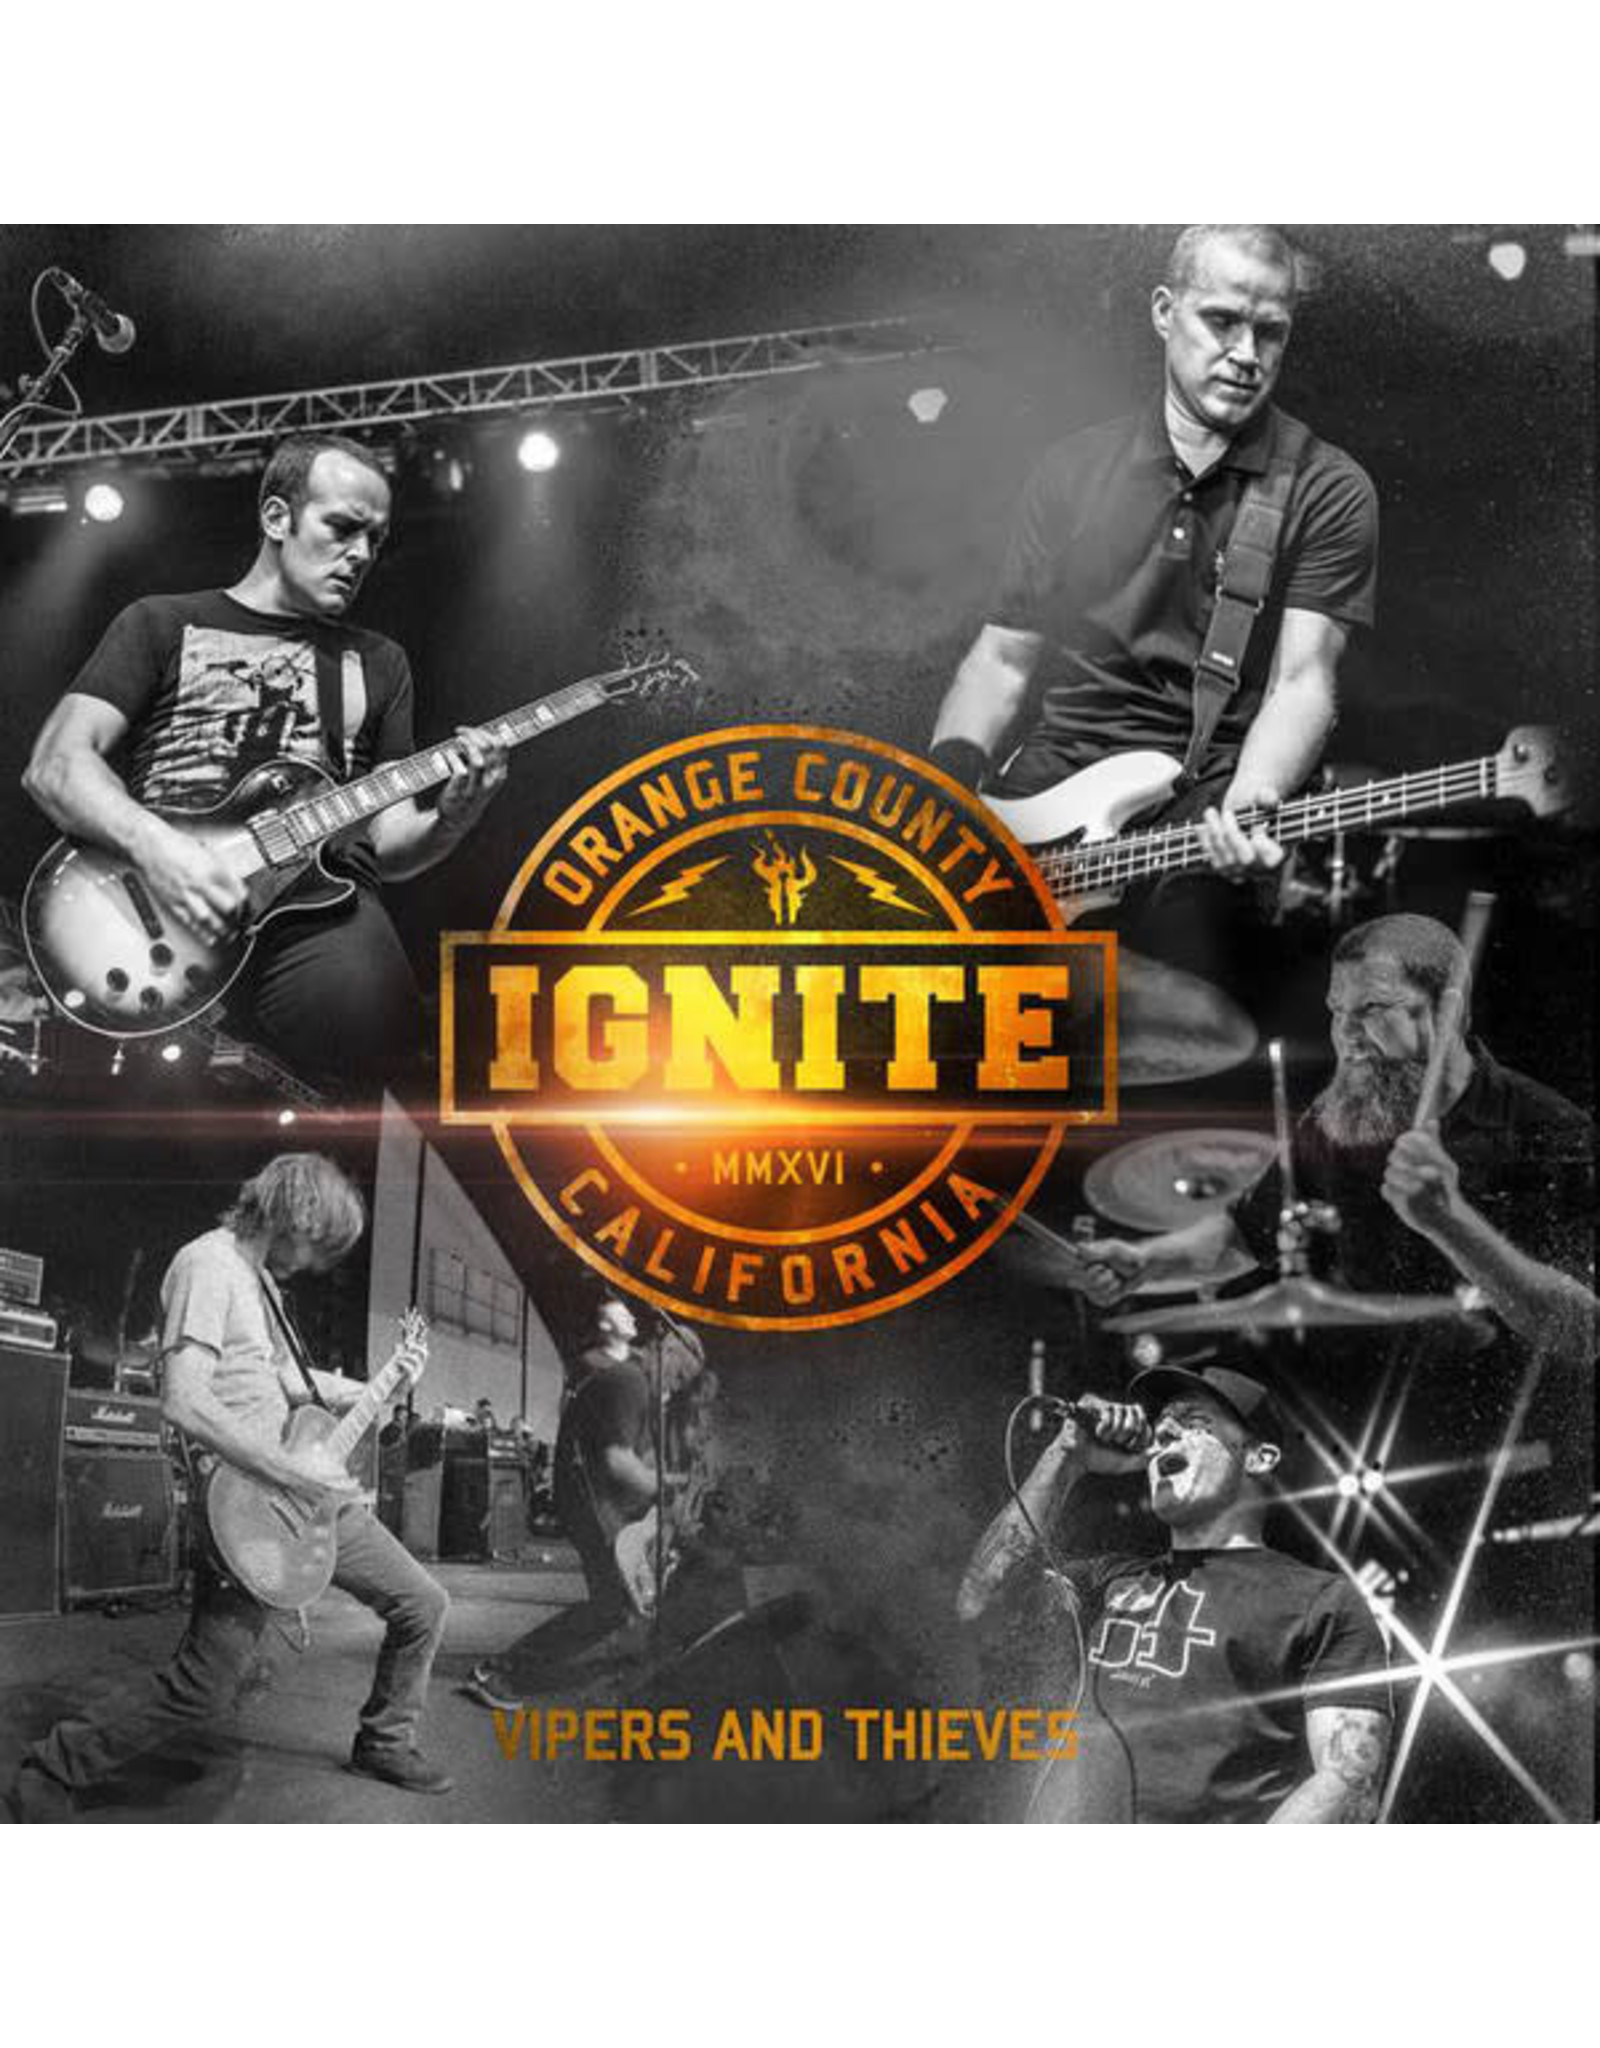 Ignite - Vipers & Thieves 7""